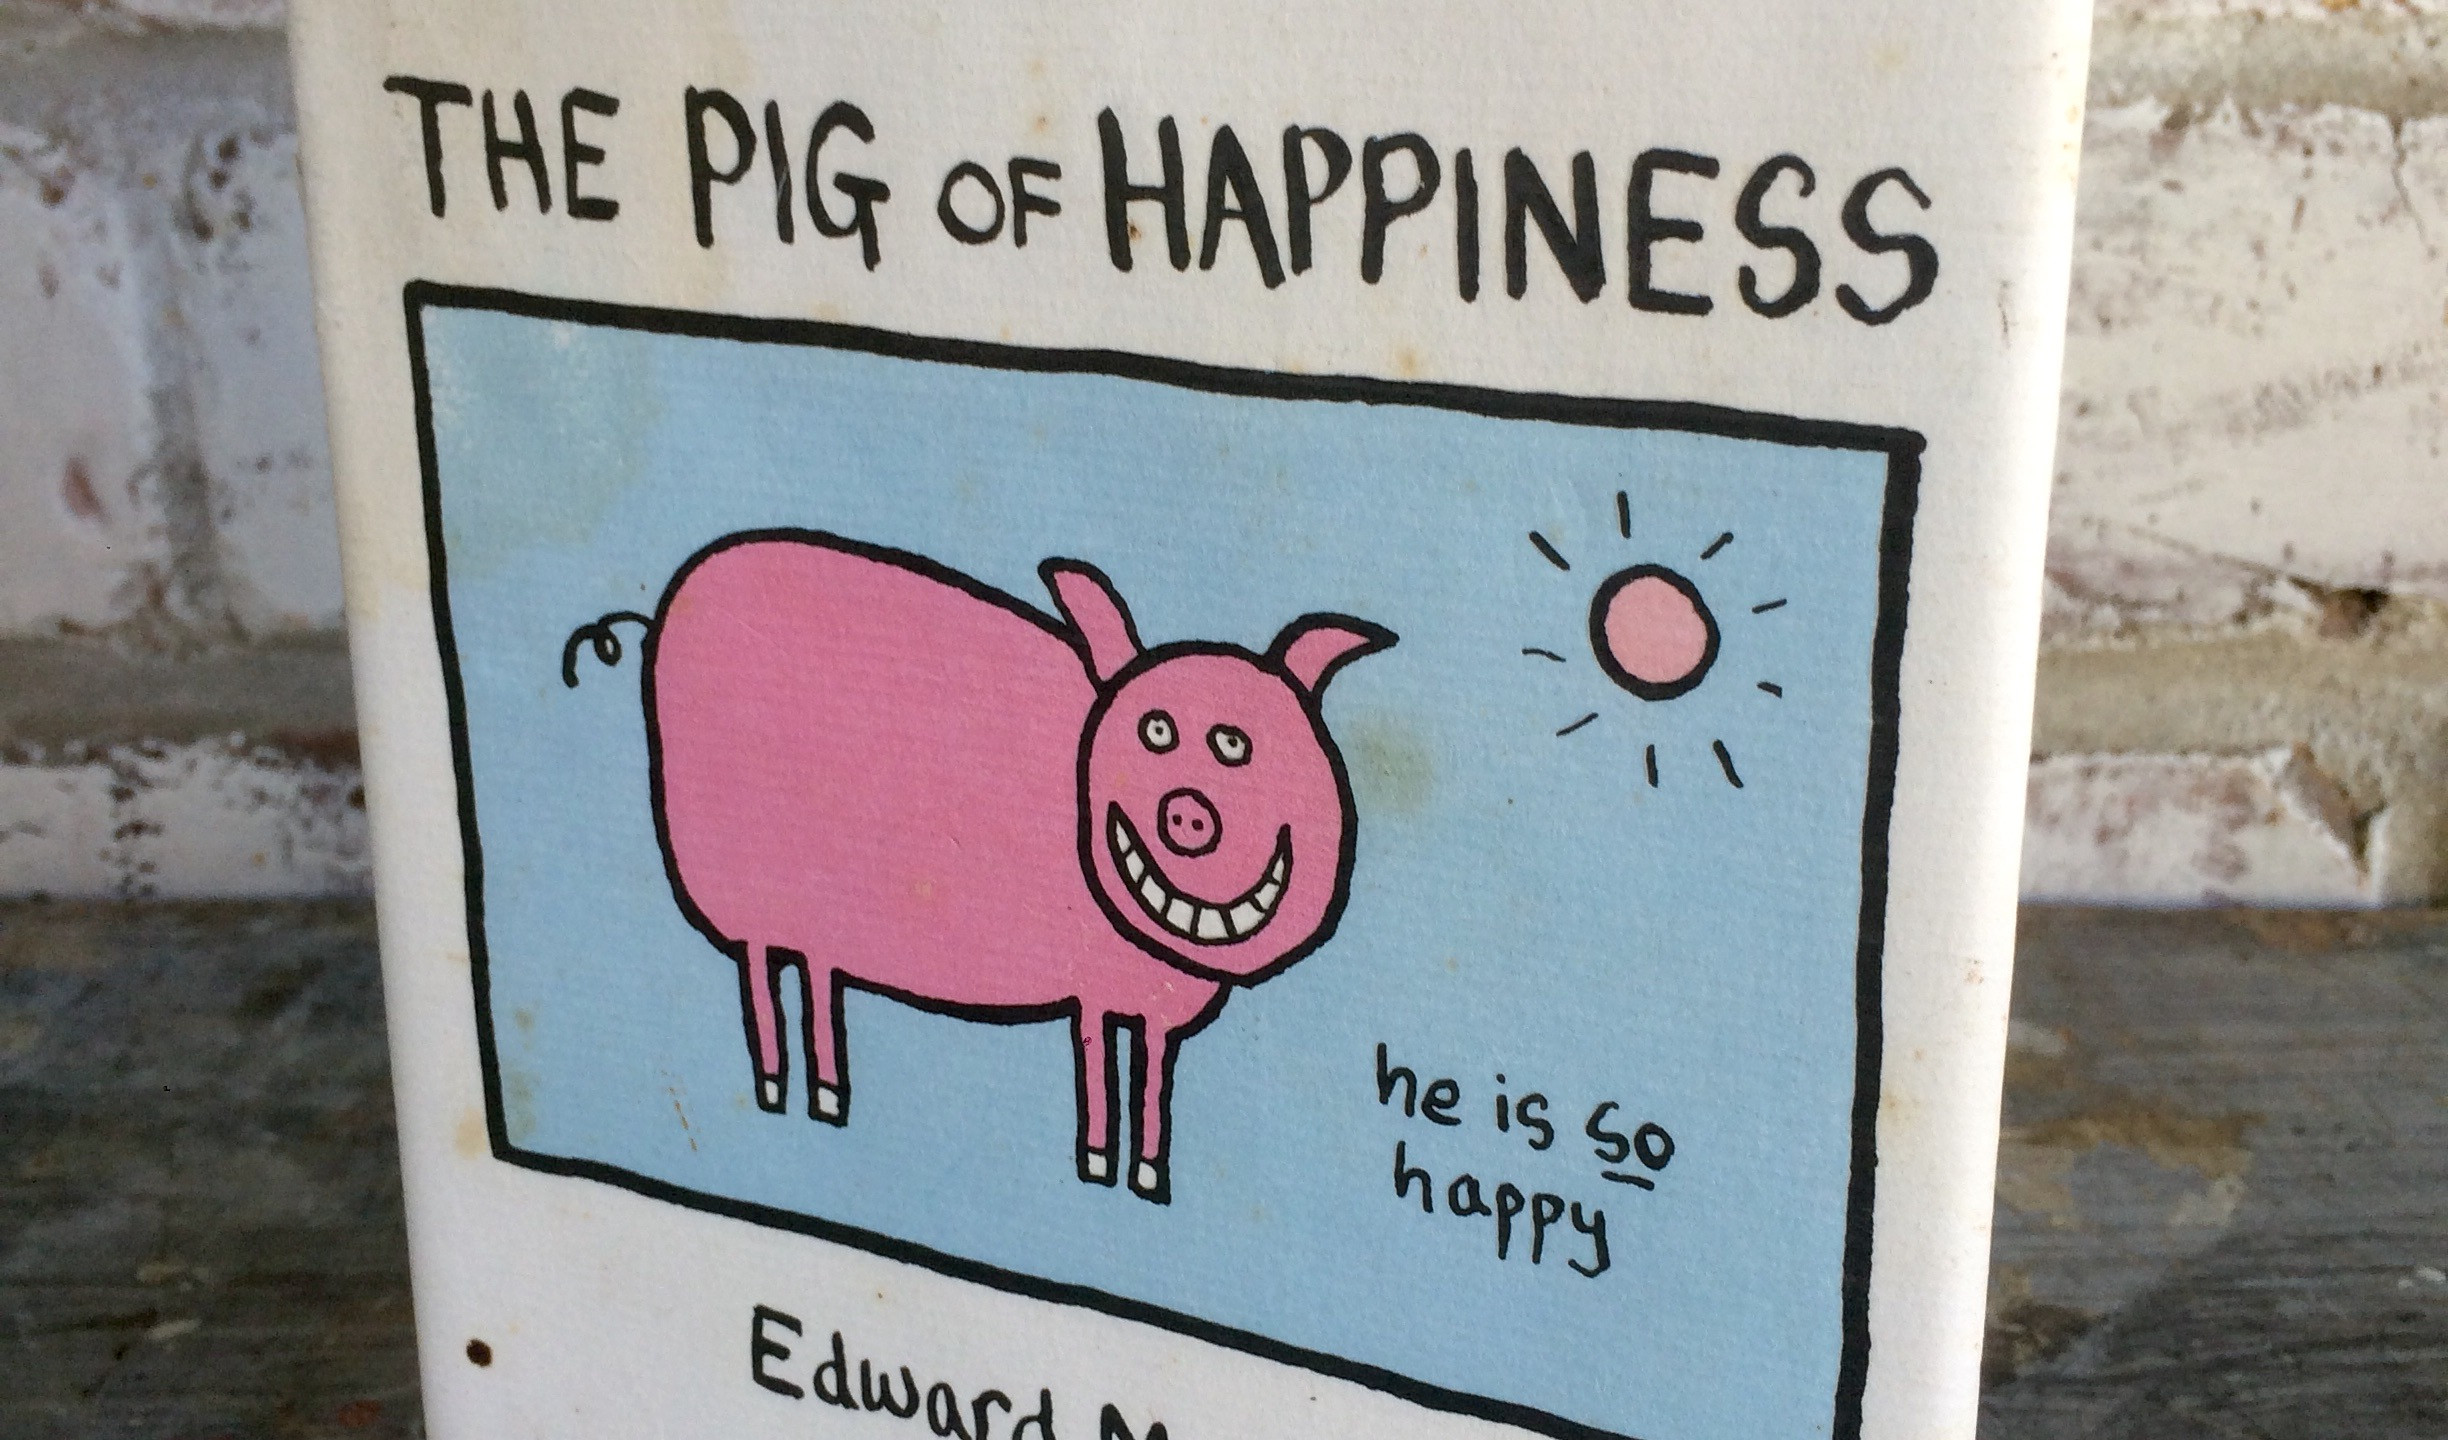 Pig of Happiness by Edward Monkton